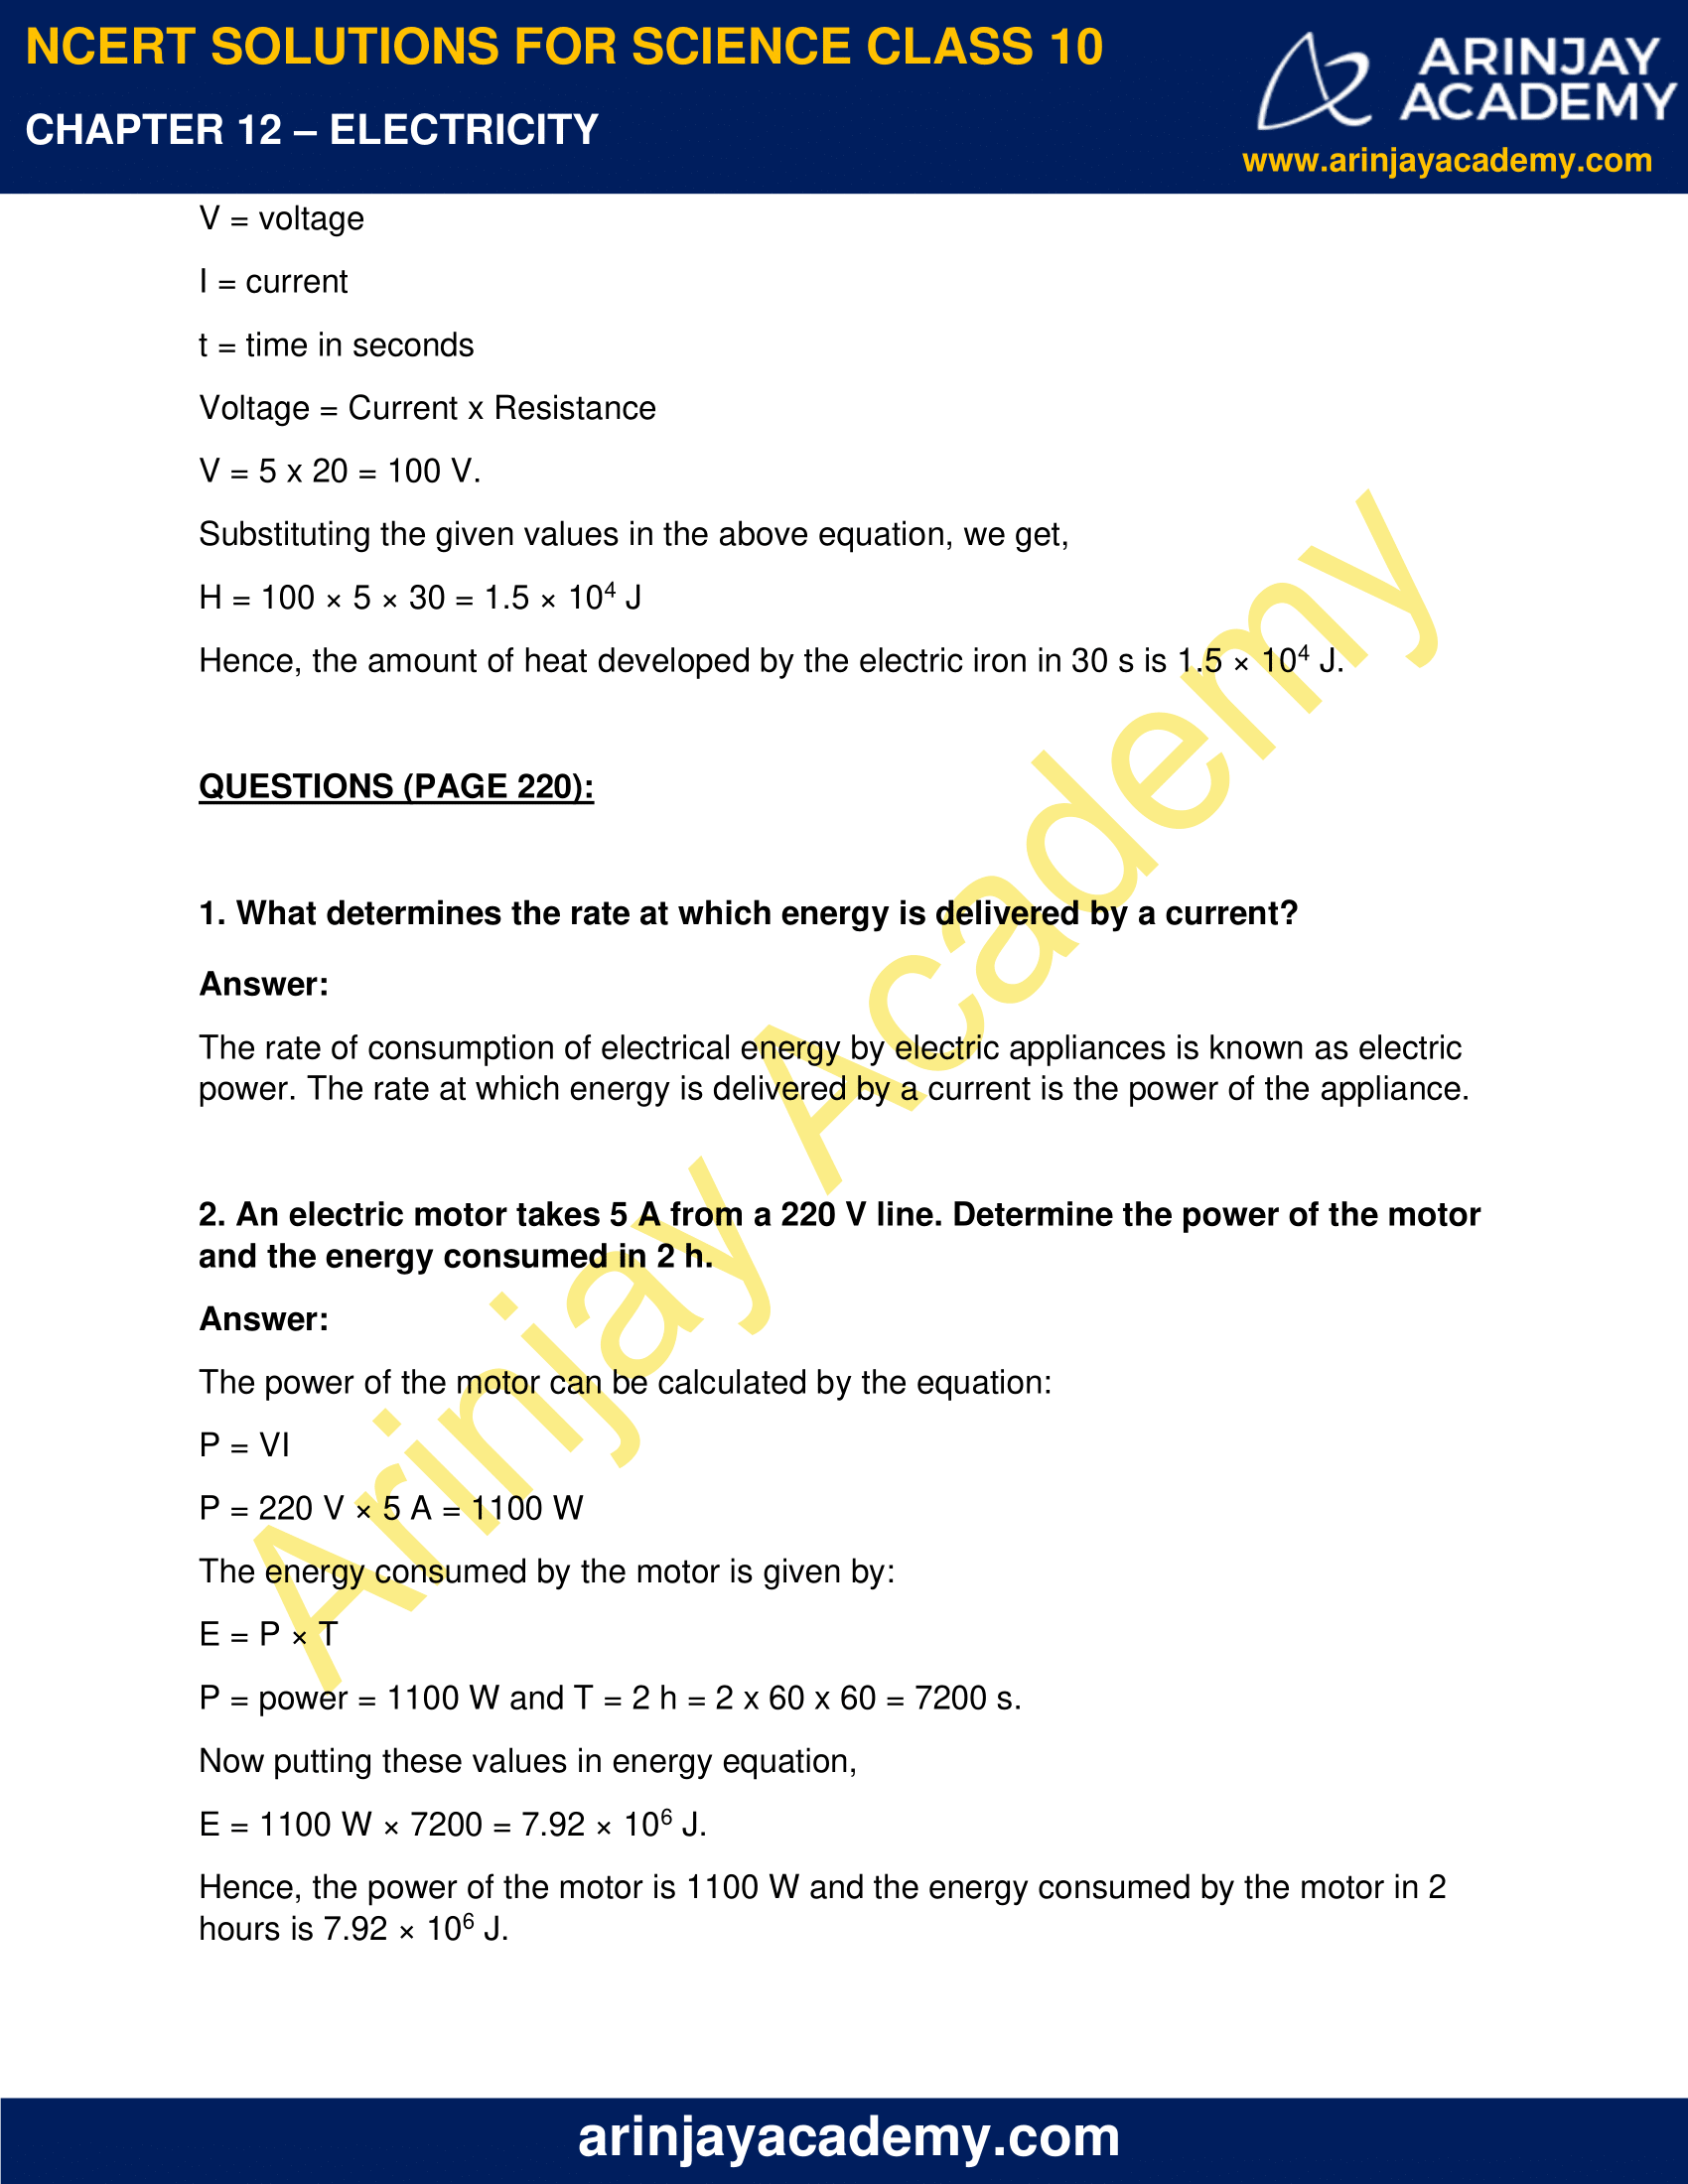 NCERT Solutions for Class 10 Science Chapter 12 Electricity image 12